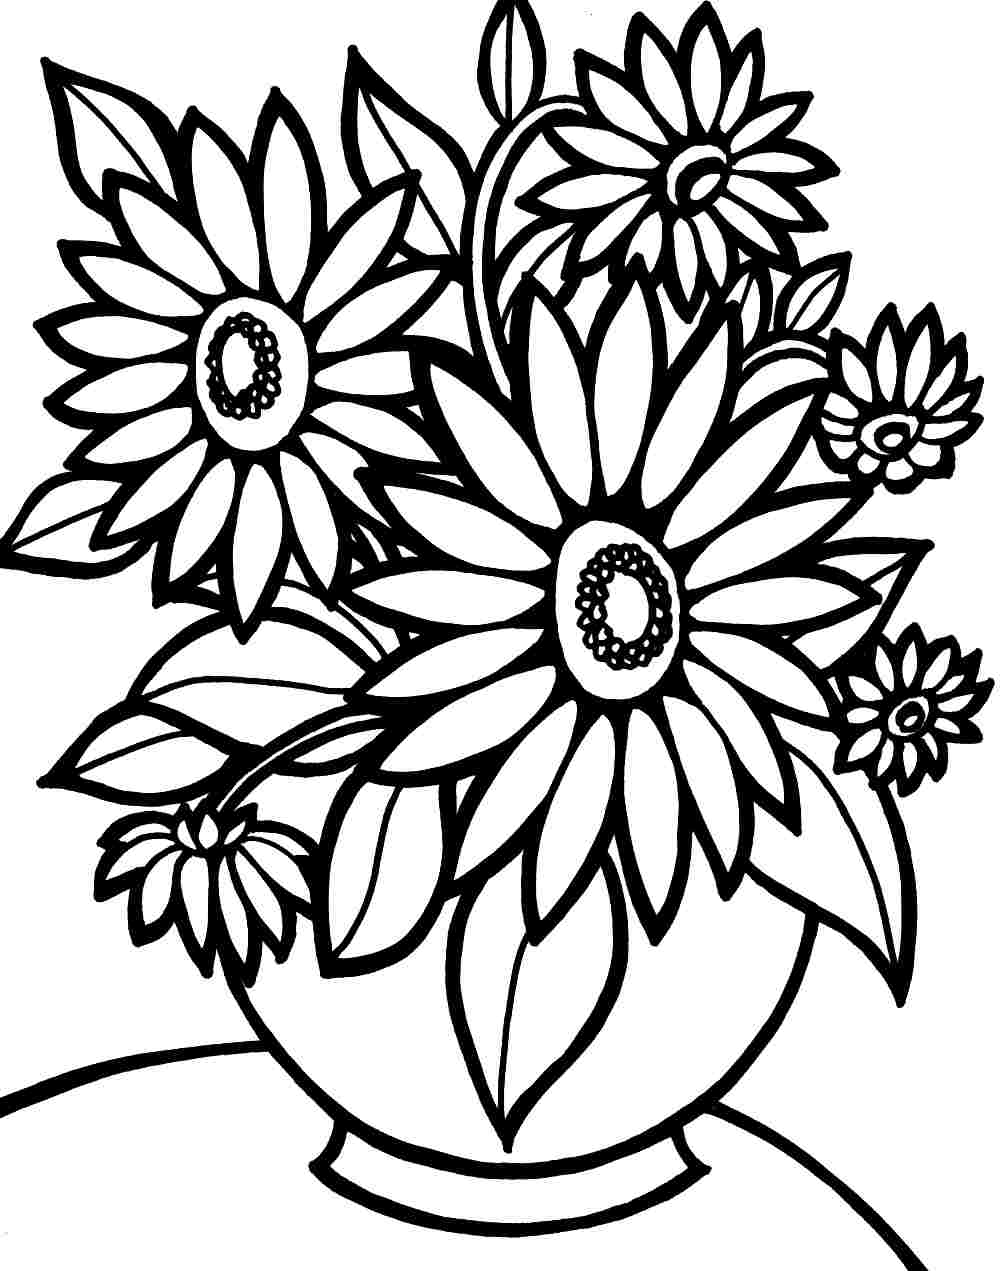 Spring Flowers Drawing At Getdrawings Free For Personal Use